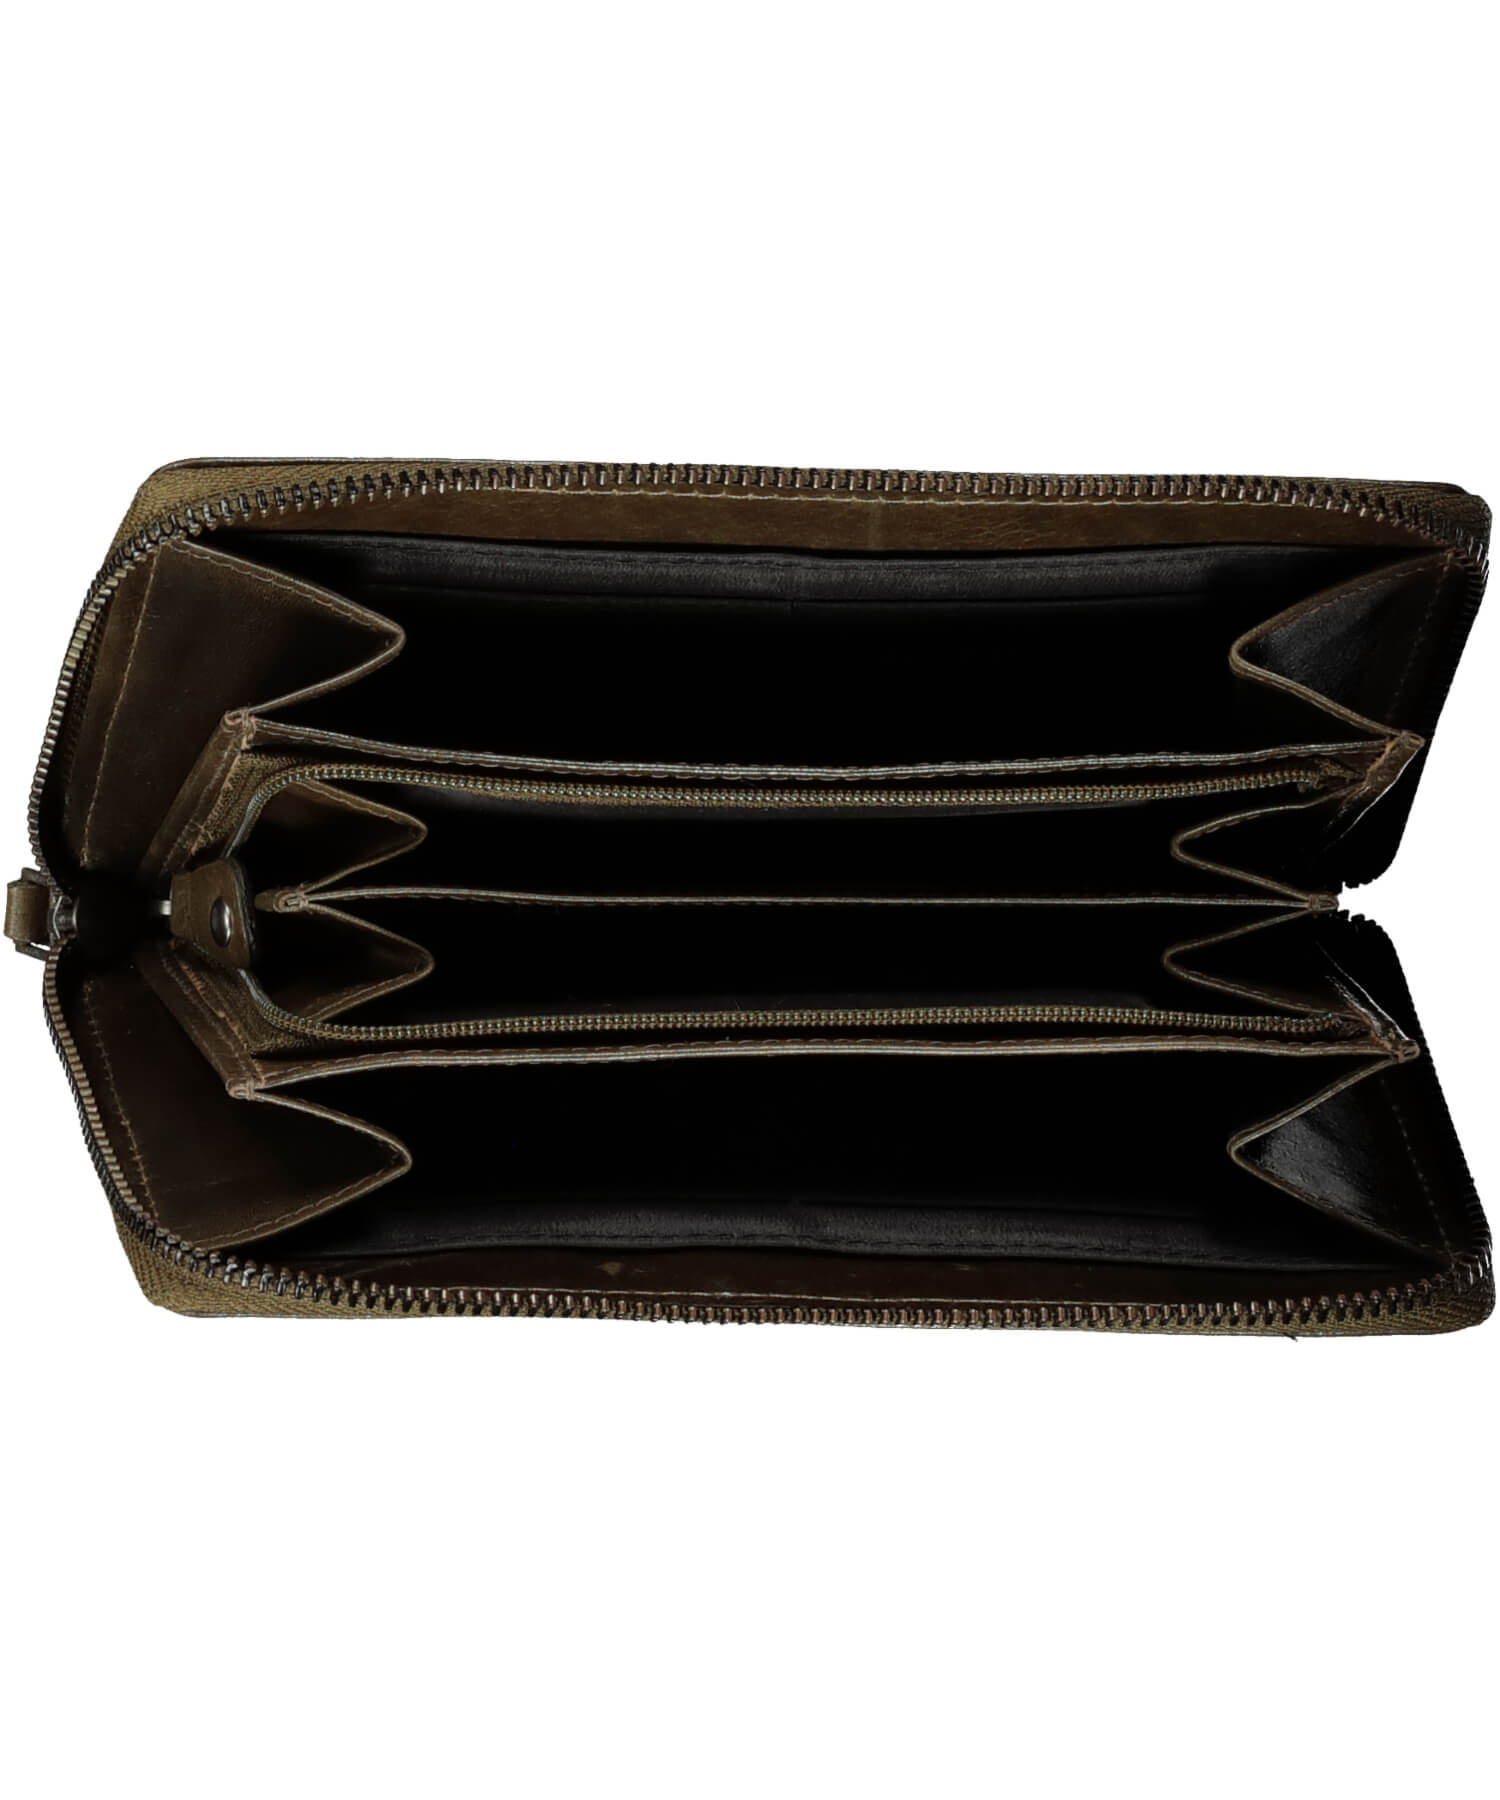 Roisin Ladies Wallet - Green - [Lee River] - Bags, Purses & Wallets - Irish Gifts